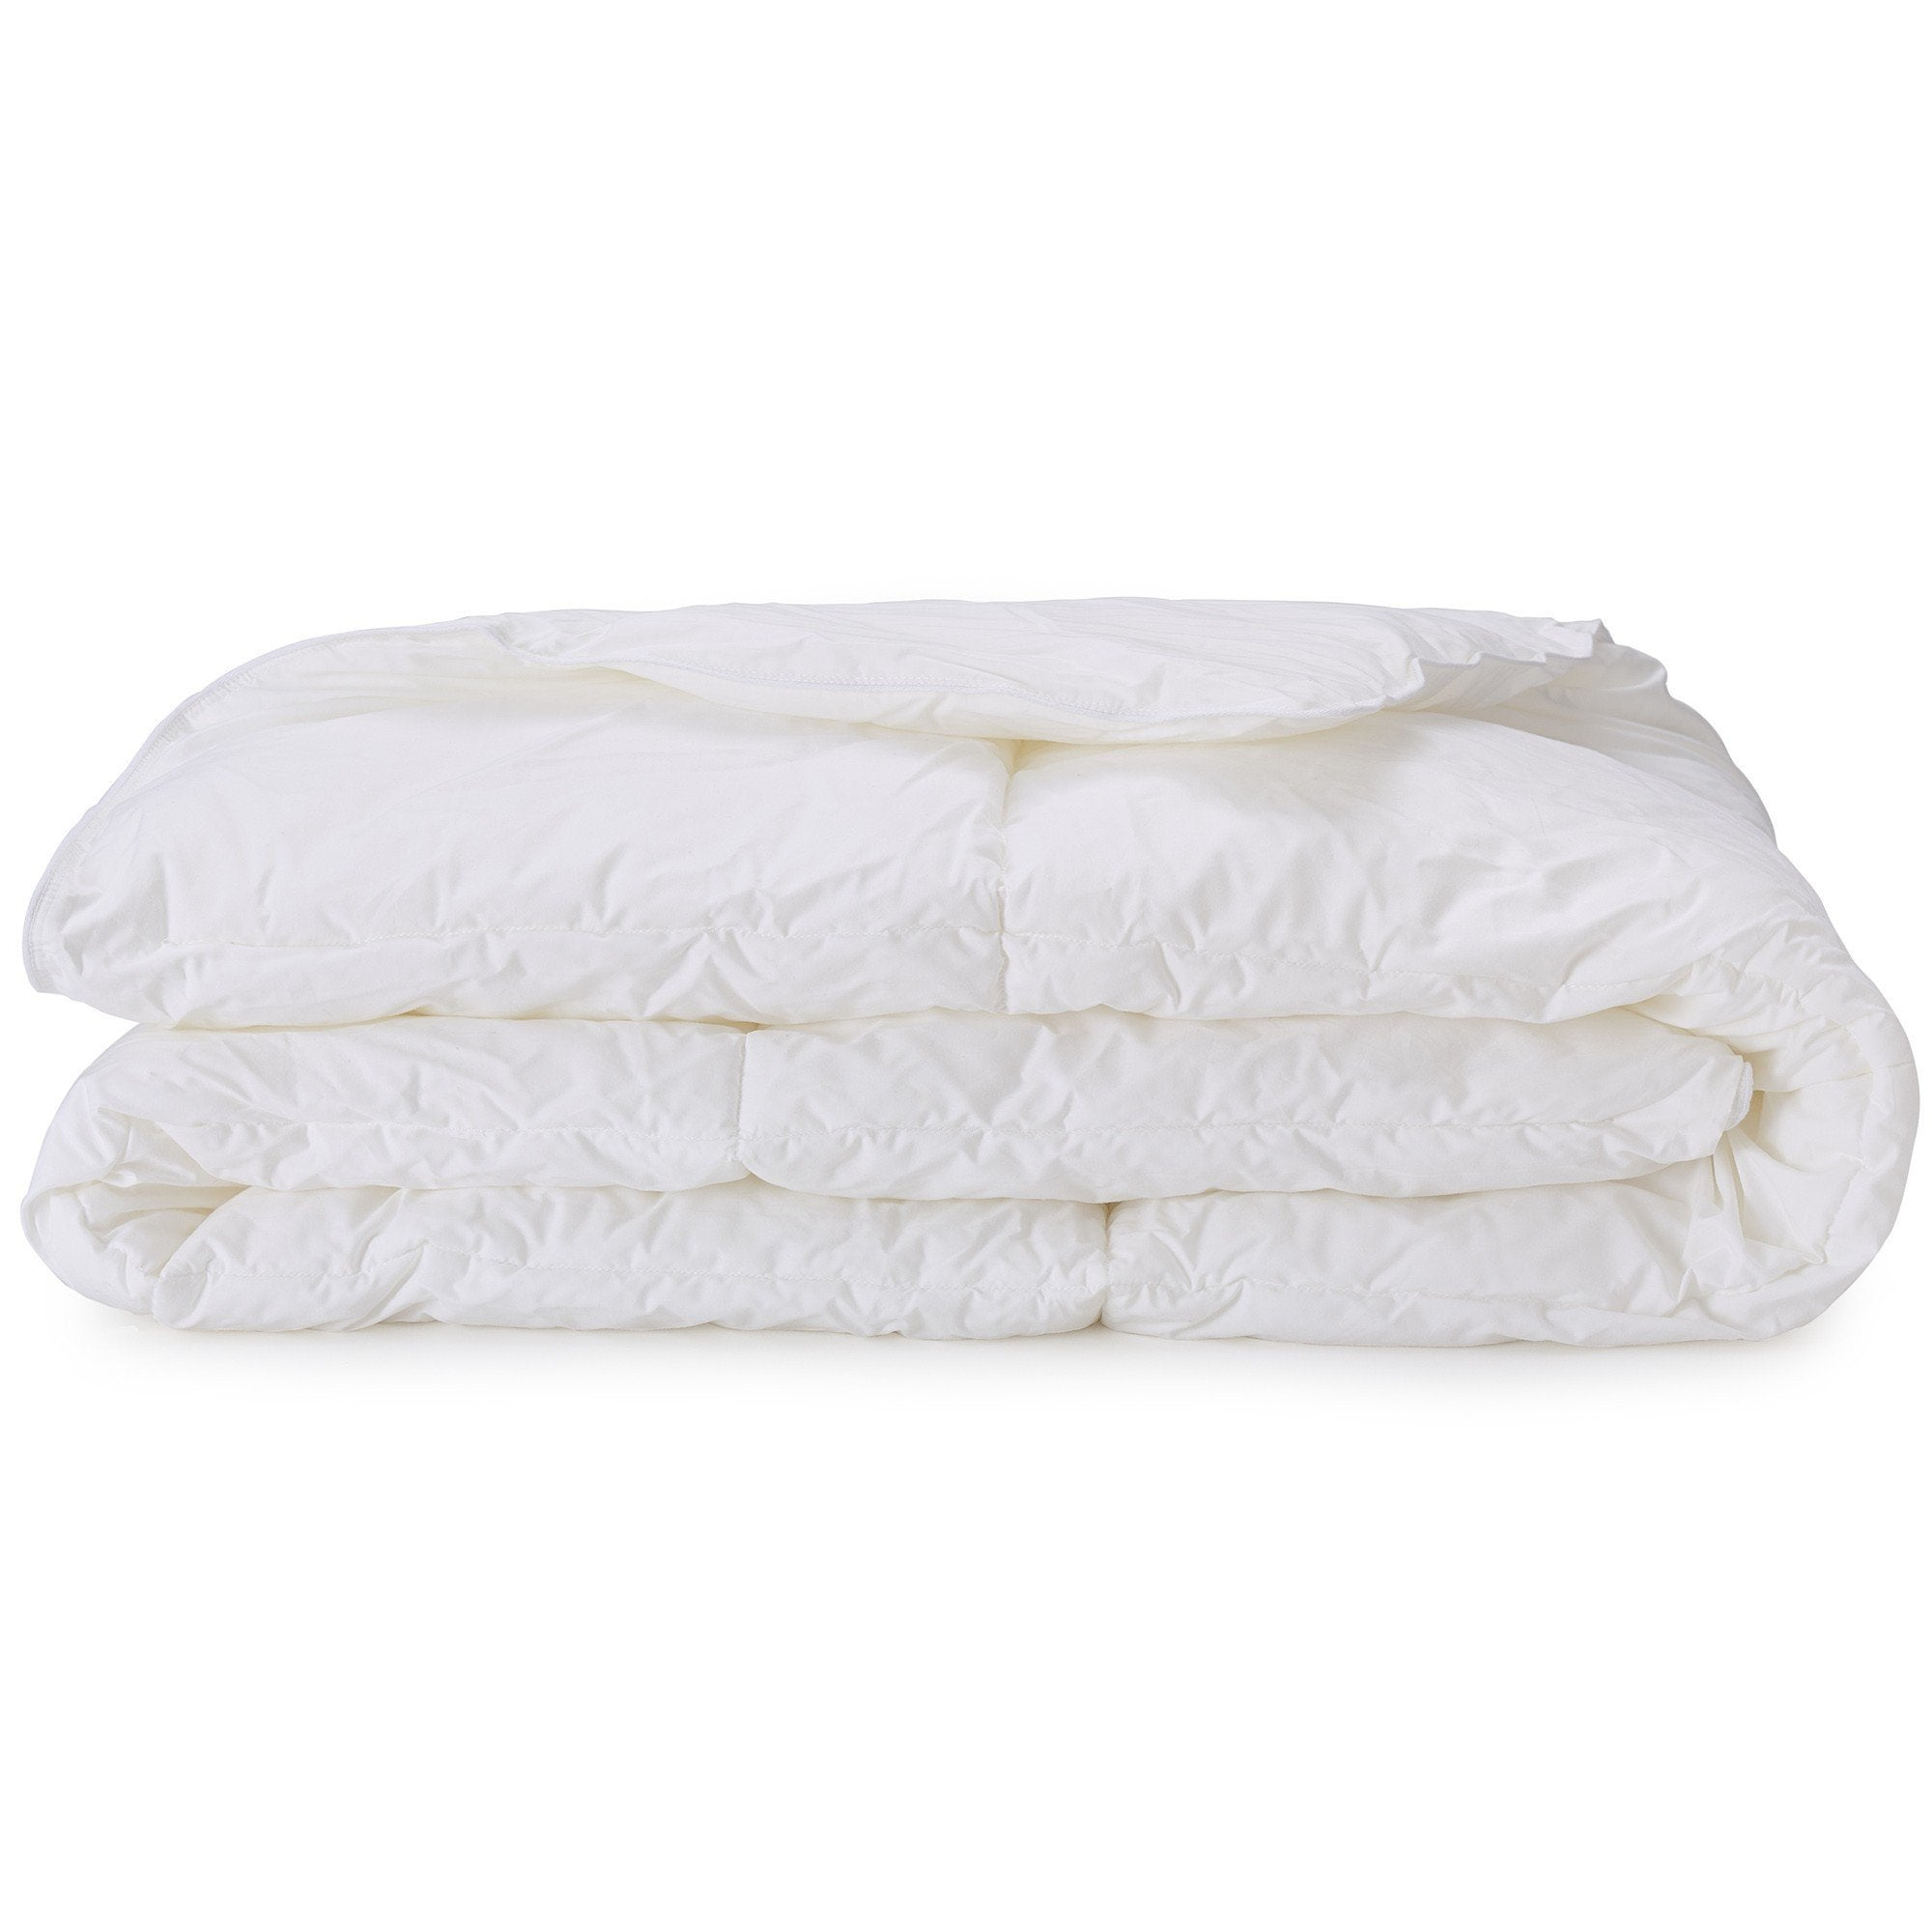 Karp duvet, white, 10% cotton & 90% polyester